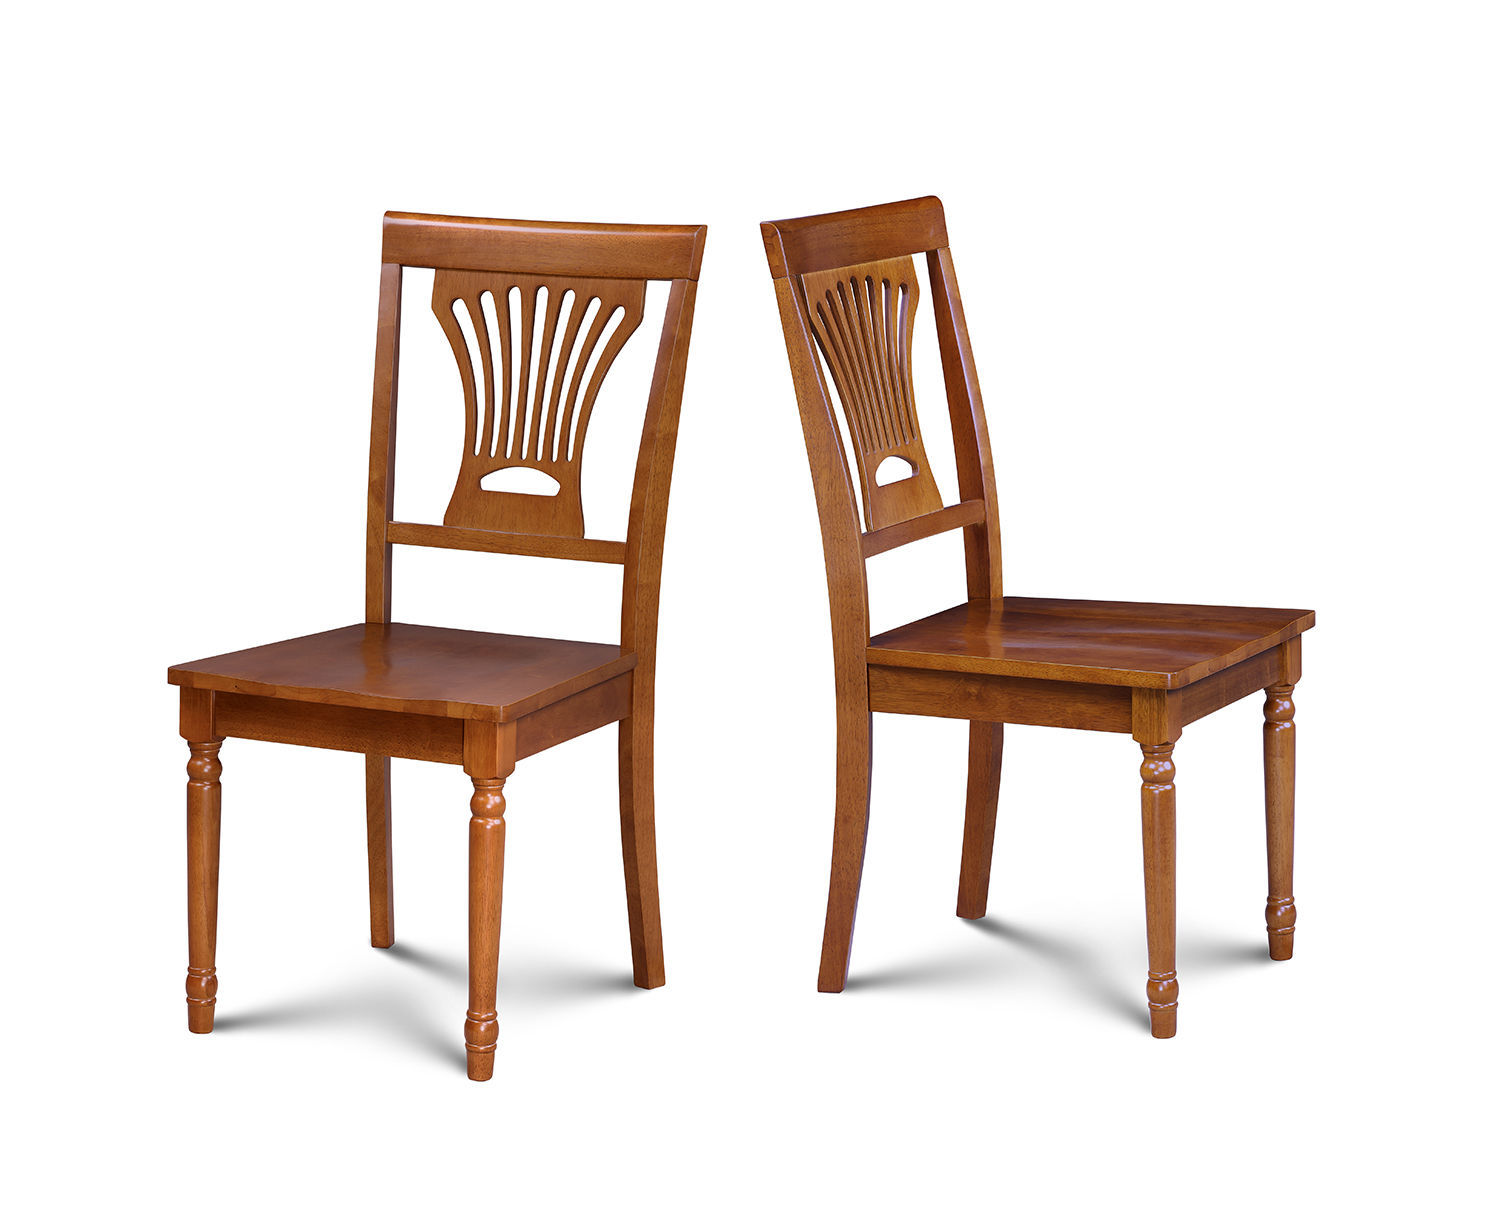 SET OF 2 DINING SIDE CHAIR WITH WOODEN SEAT IN SADDLE  BROWN